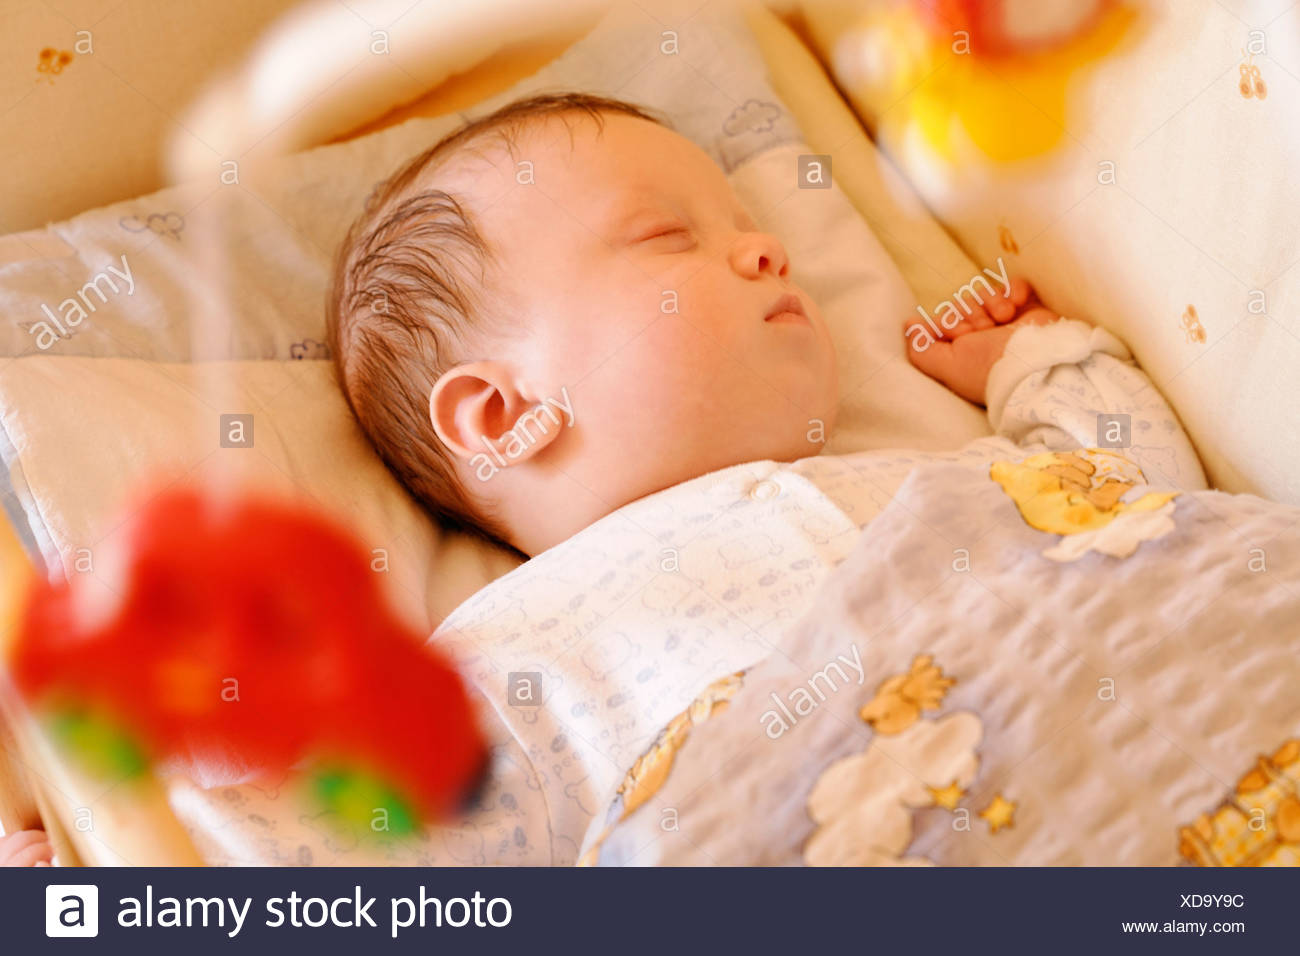 Picture of: 0 To 6 Months 0 6 Months Babies Baby Bed Beds Boy Boys Child Children Close Up Close Up Closed Eyes Close Stock Photo Alamy